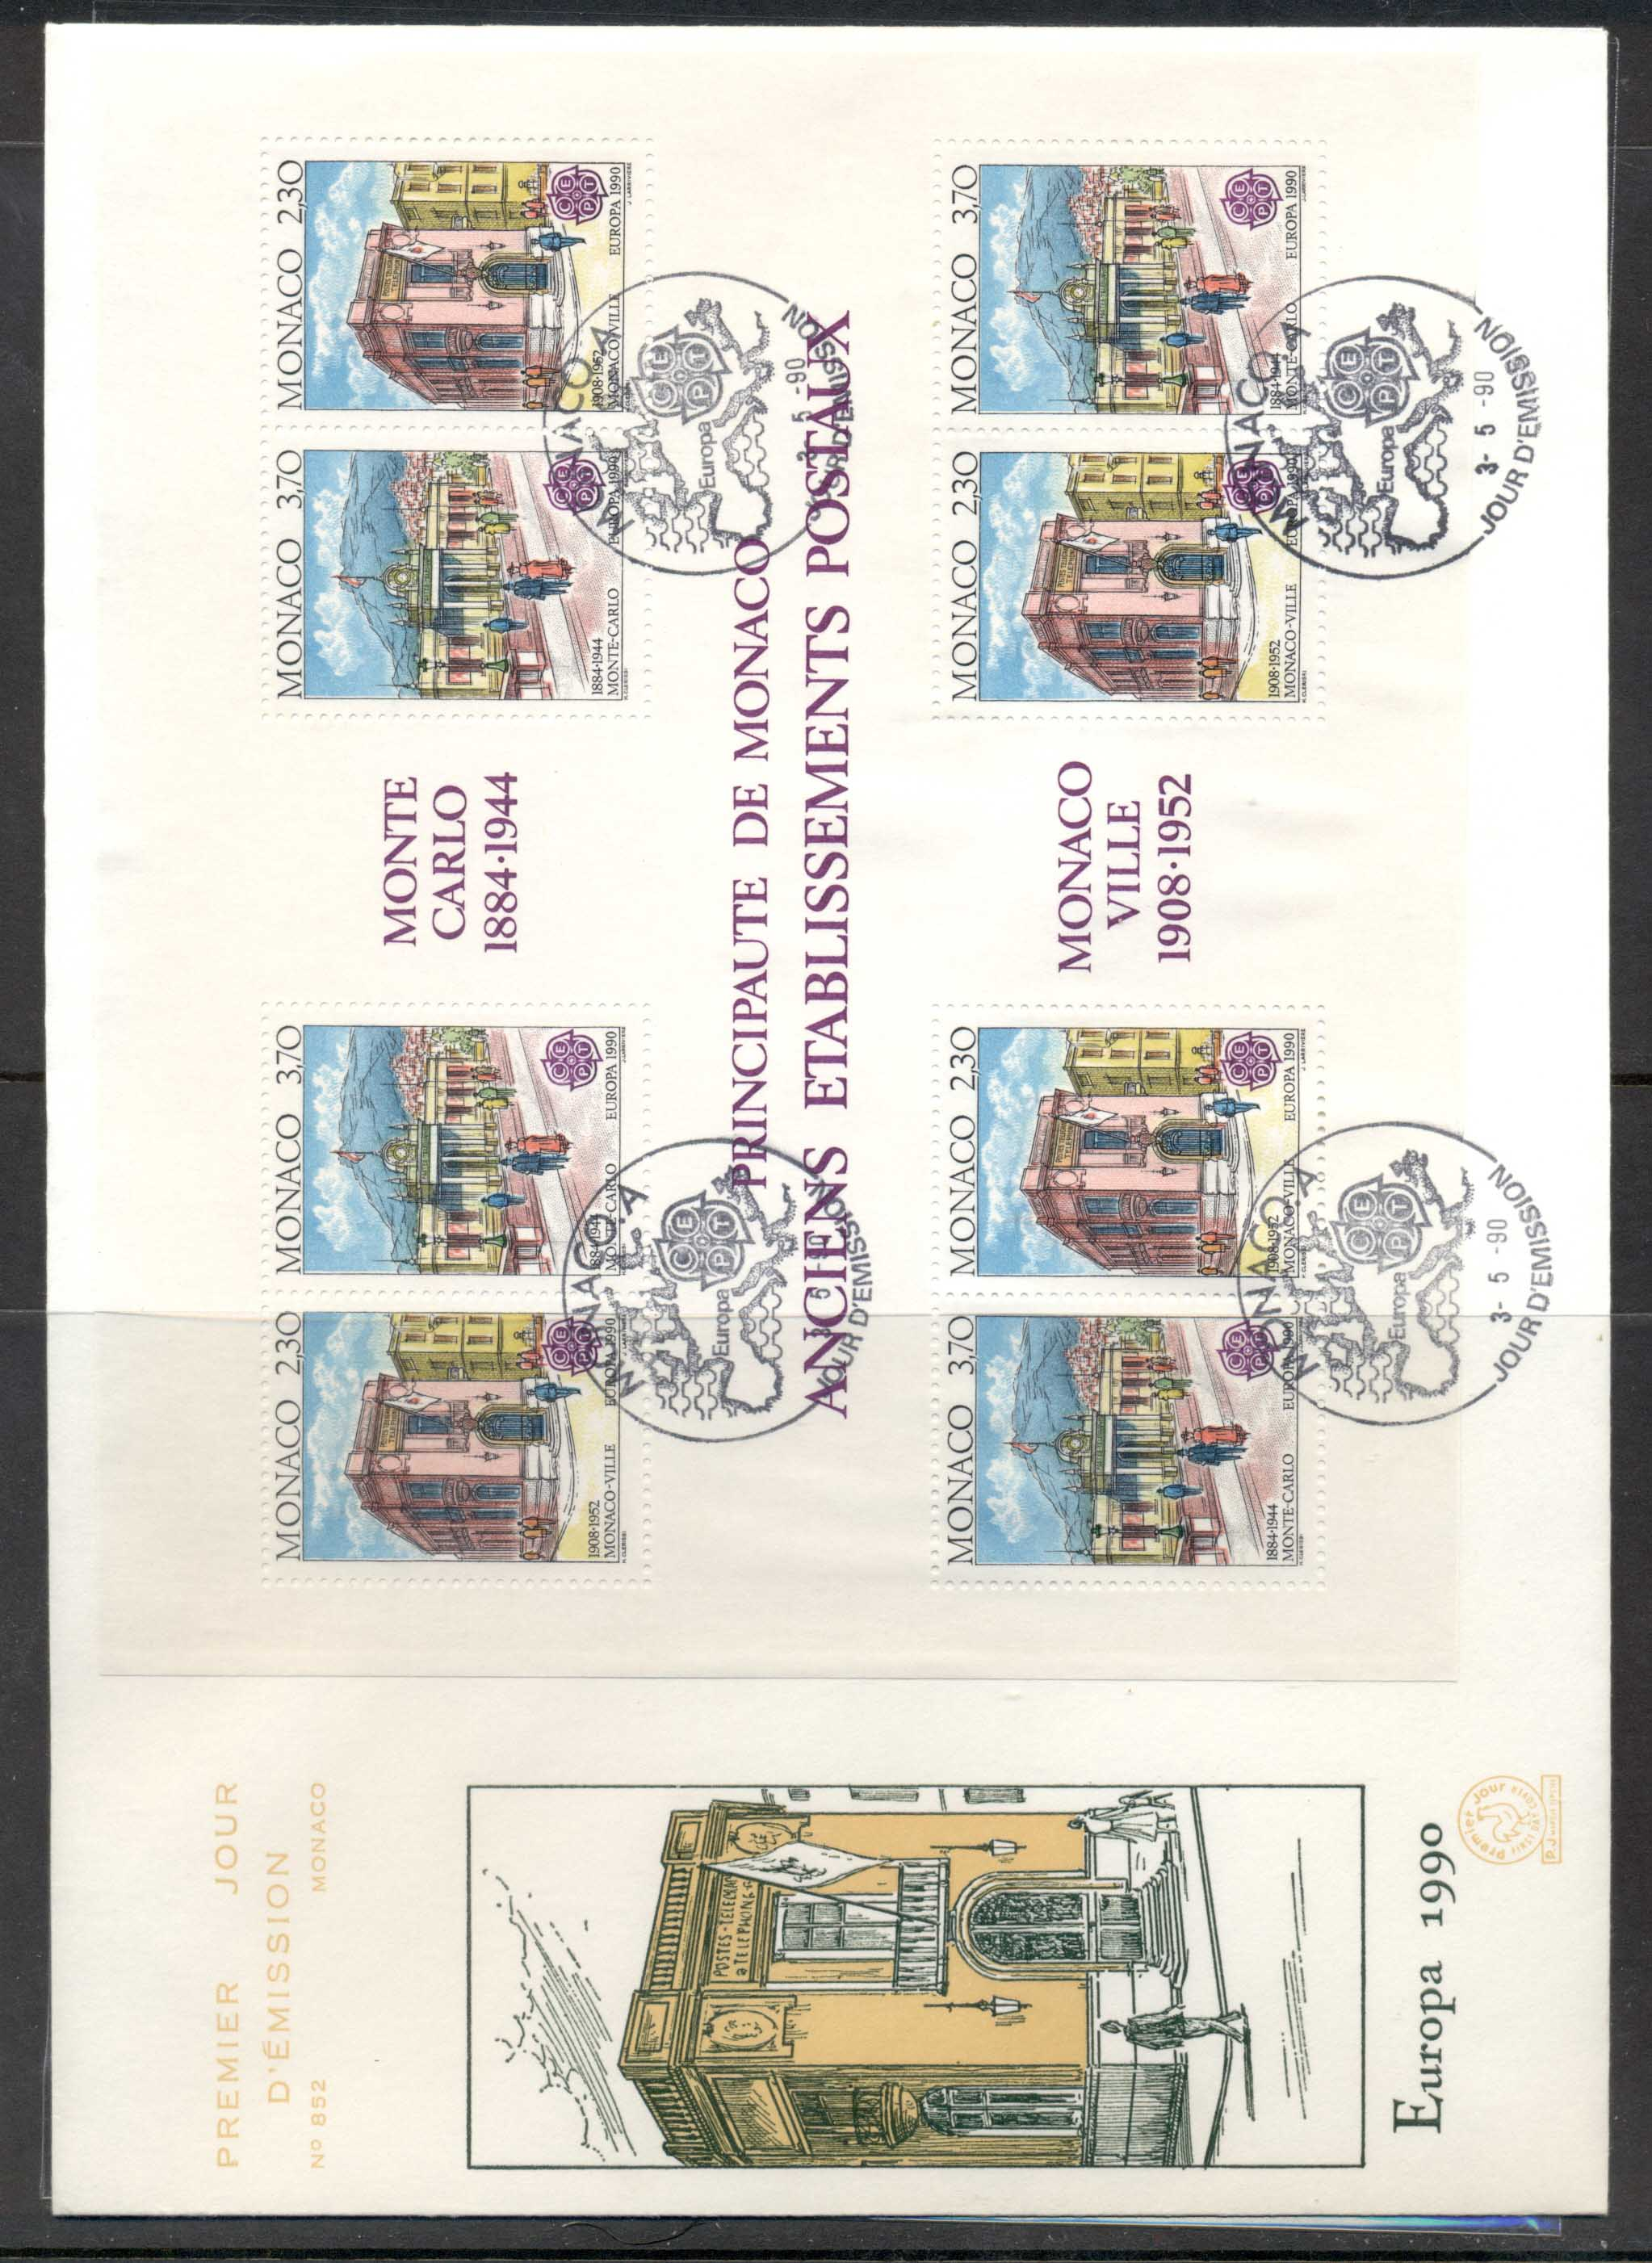 Monaco 1990 Europa Post Offices XLMS FDC